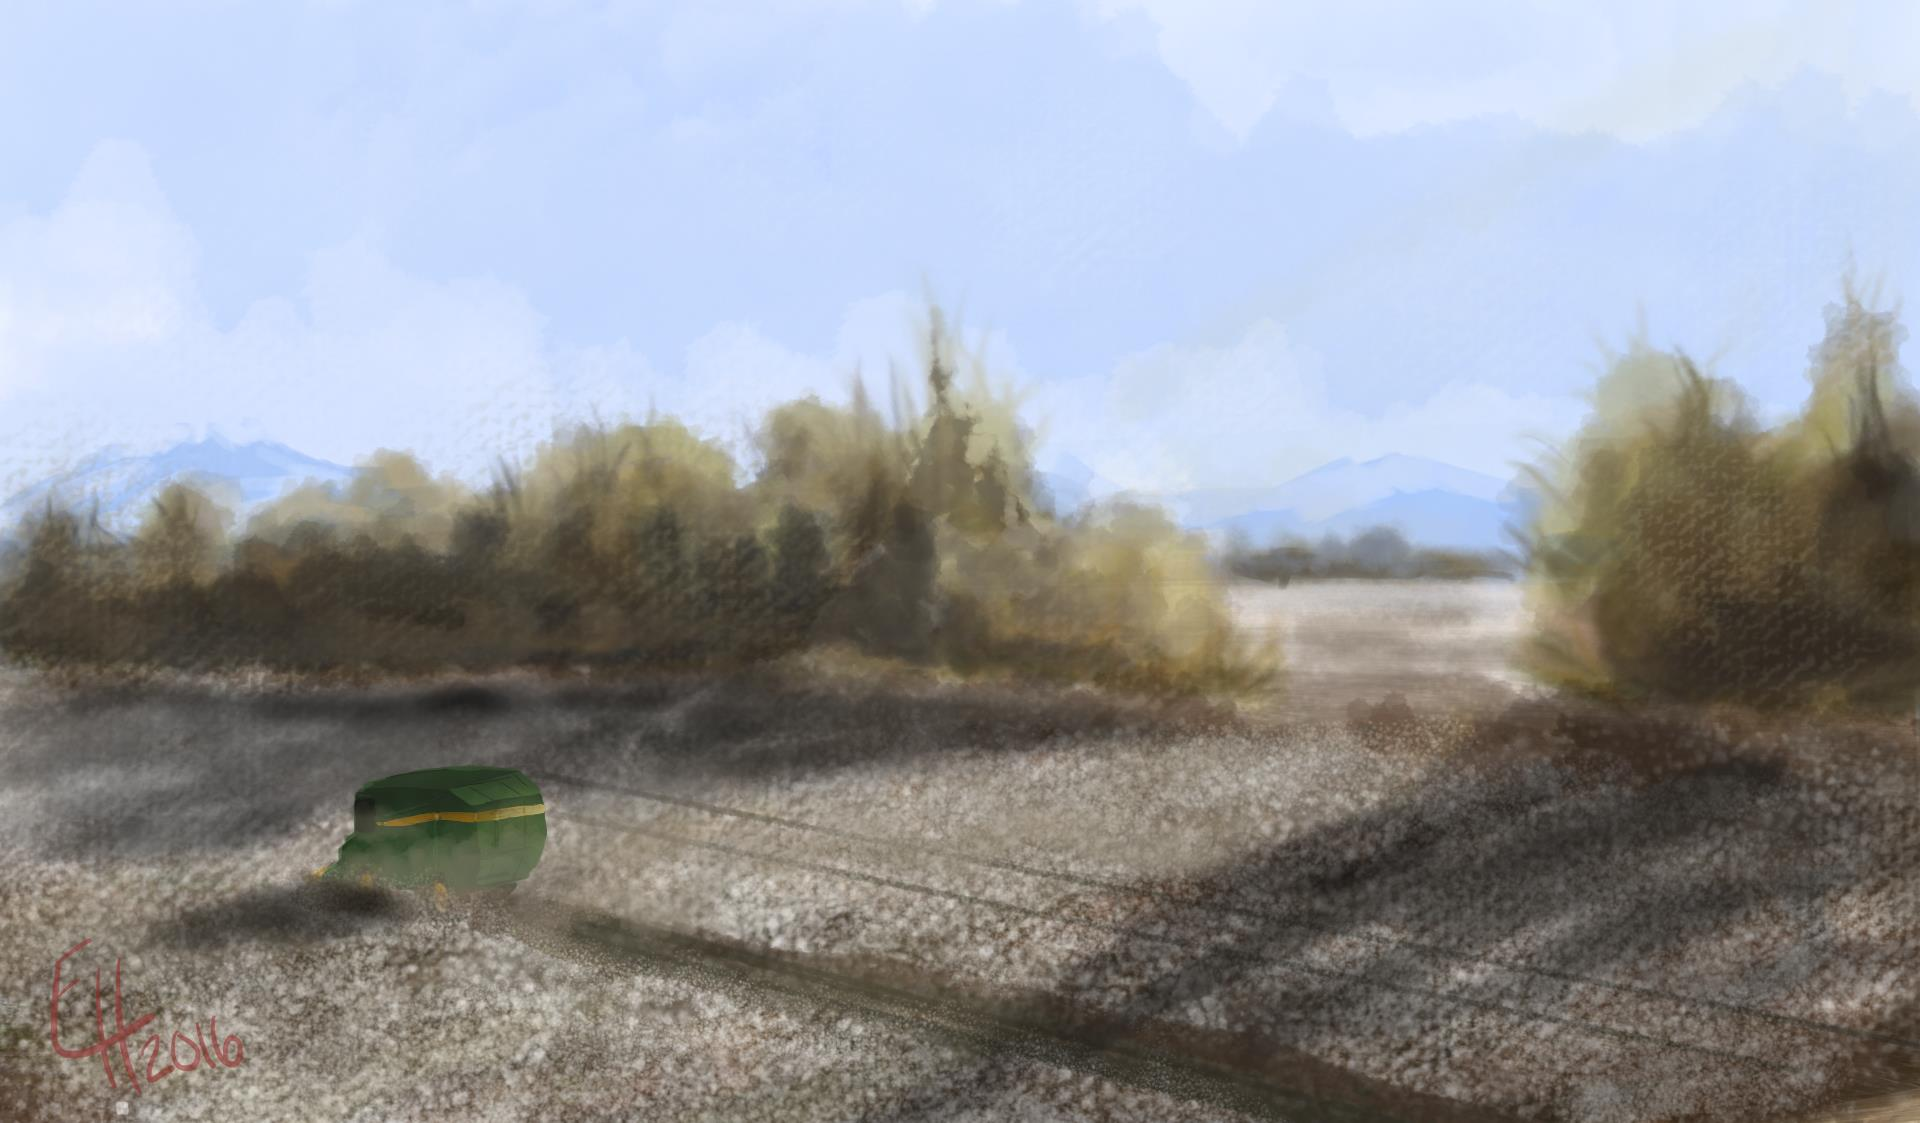 Digital Painting 027 - Combine in a Cotton Field.